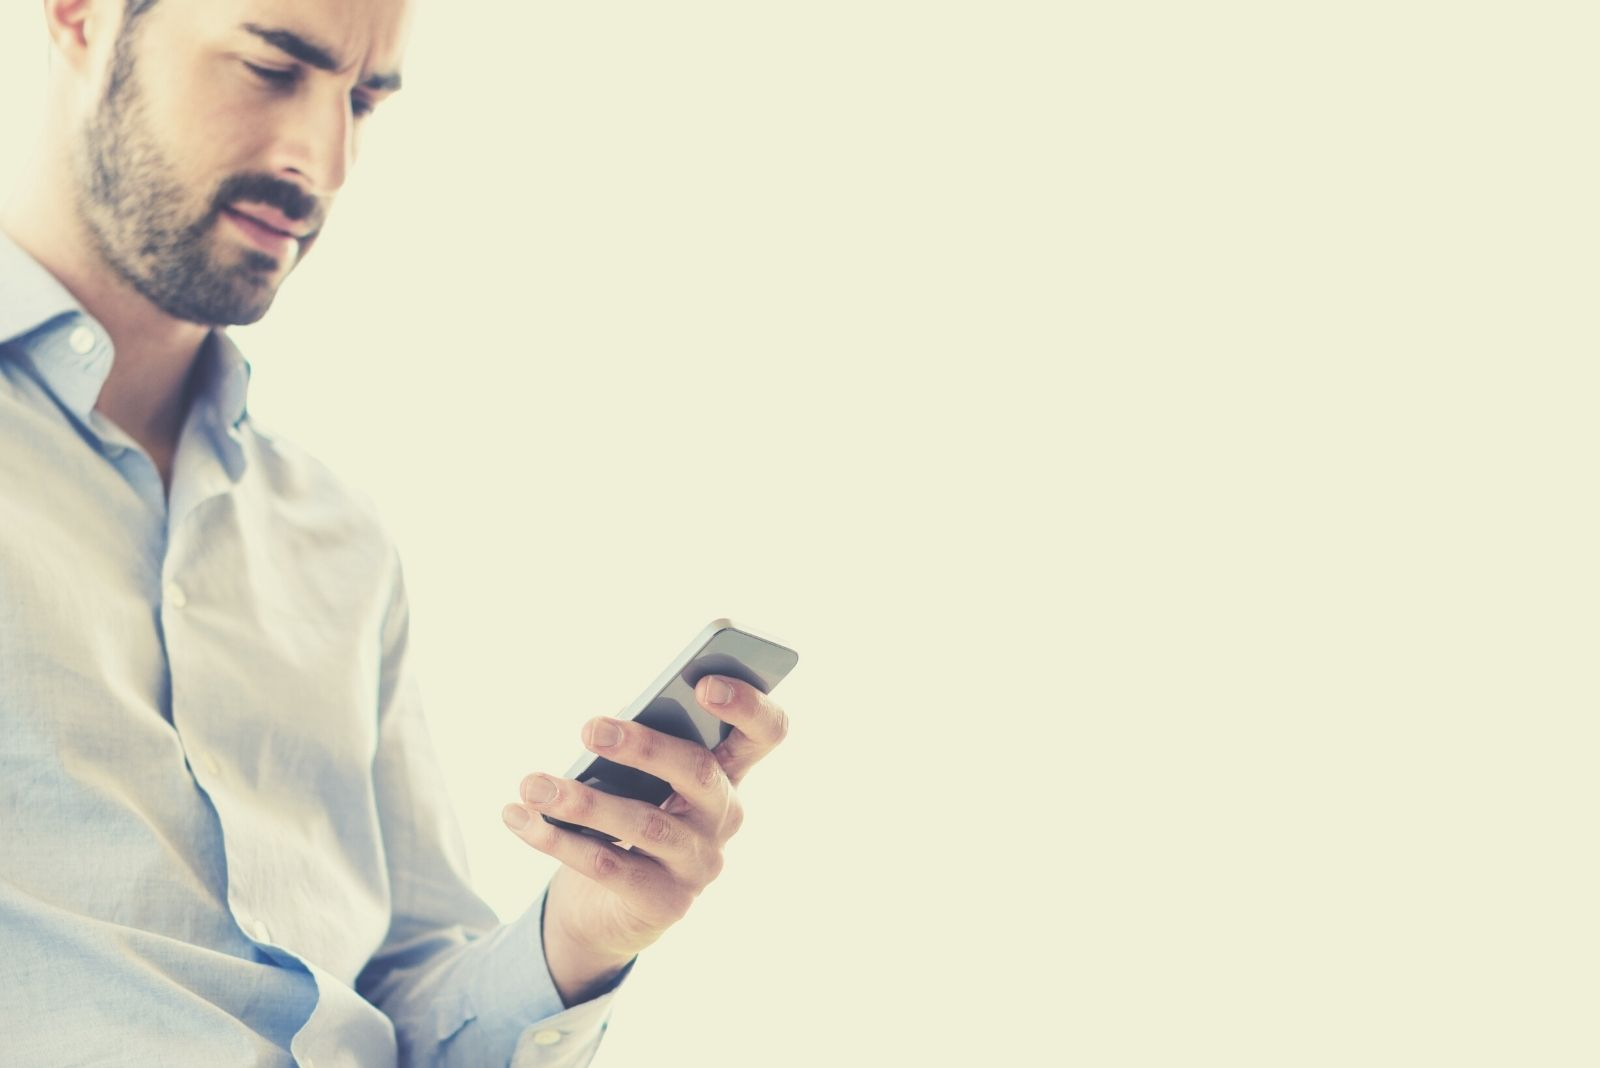 pensive man texting on his smartphone wearing smart casual with white background